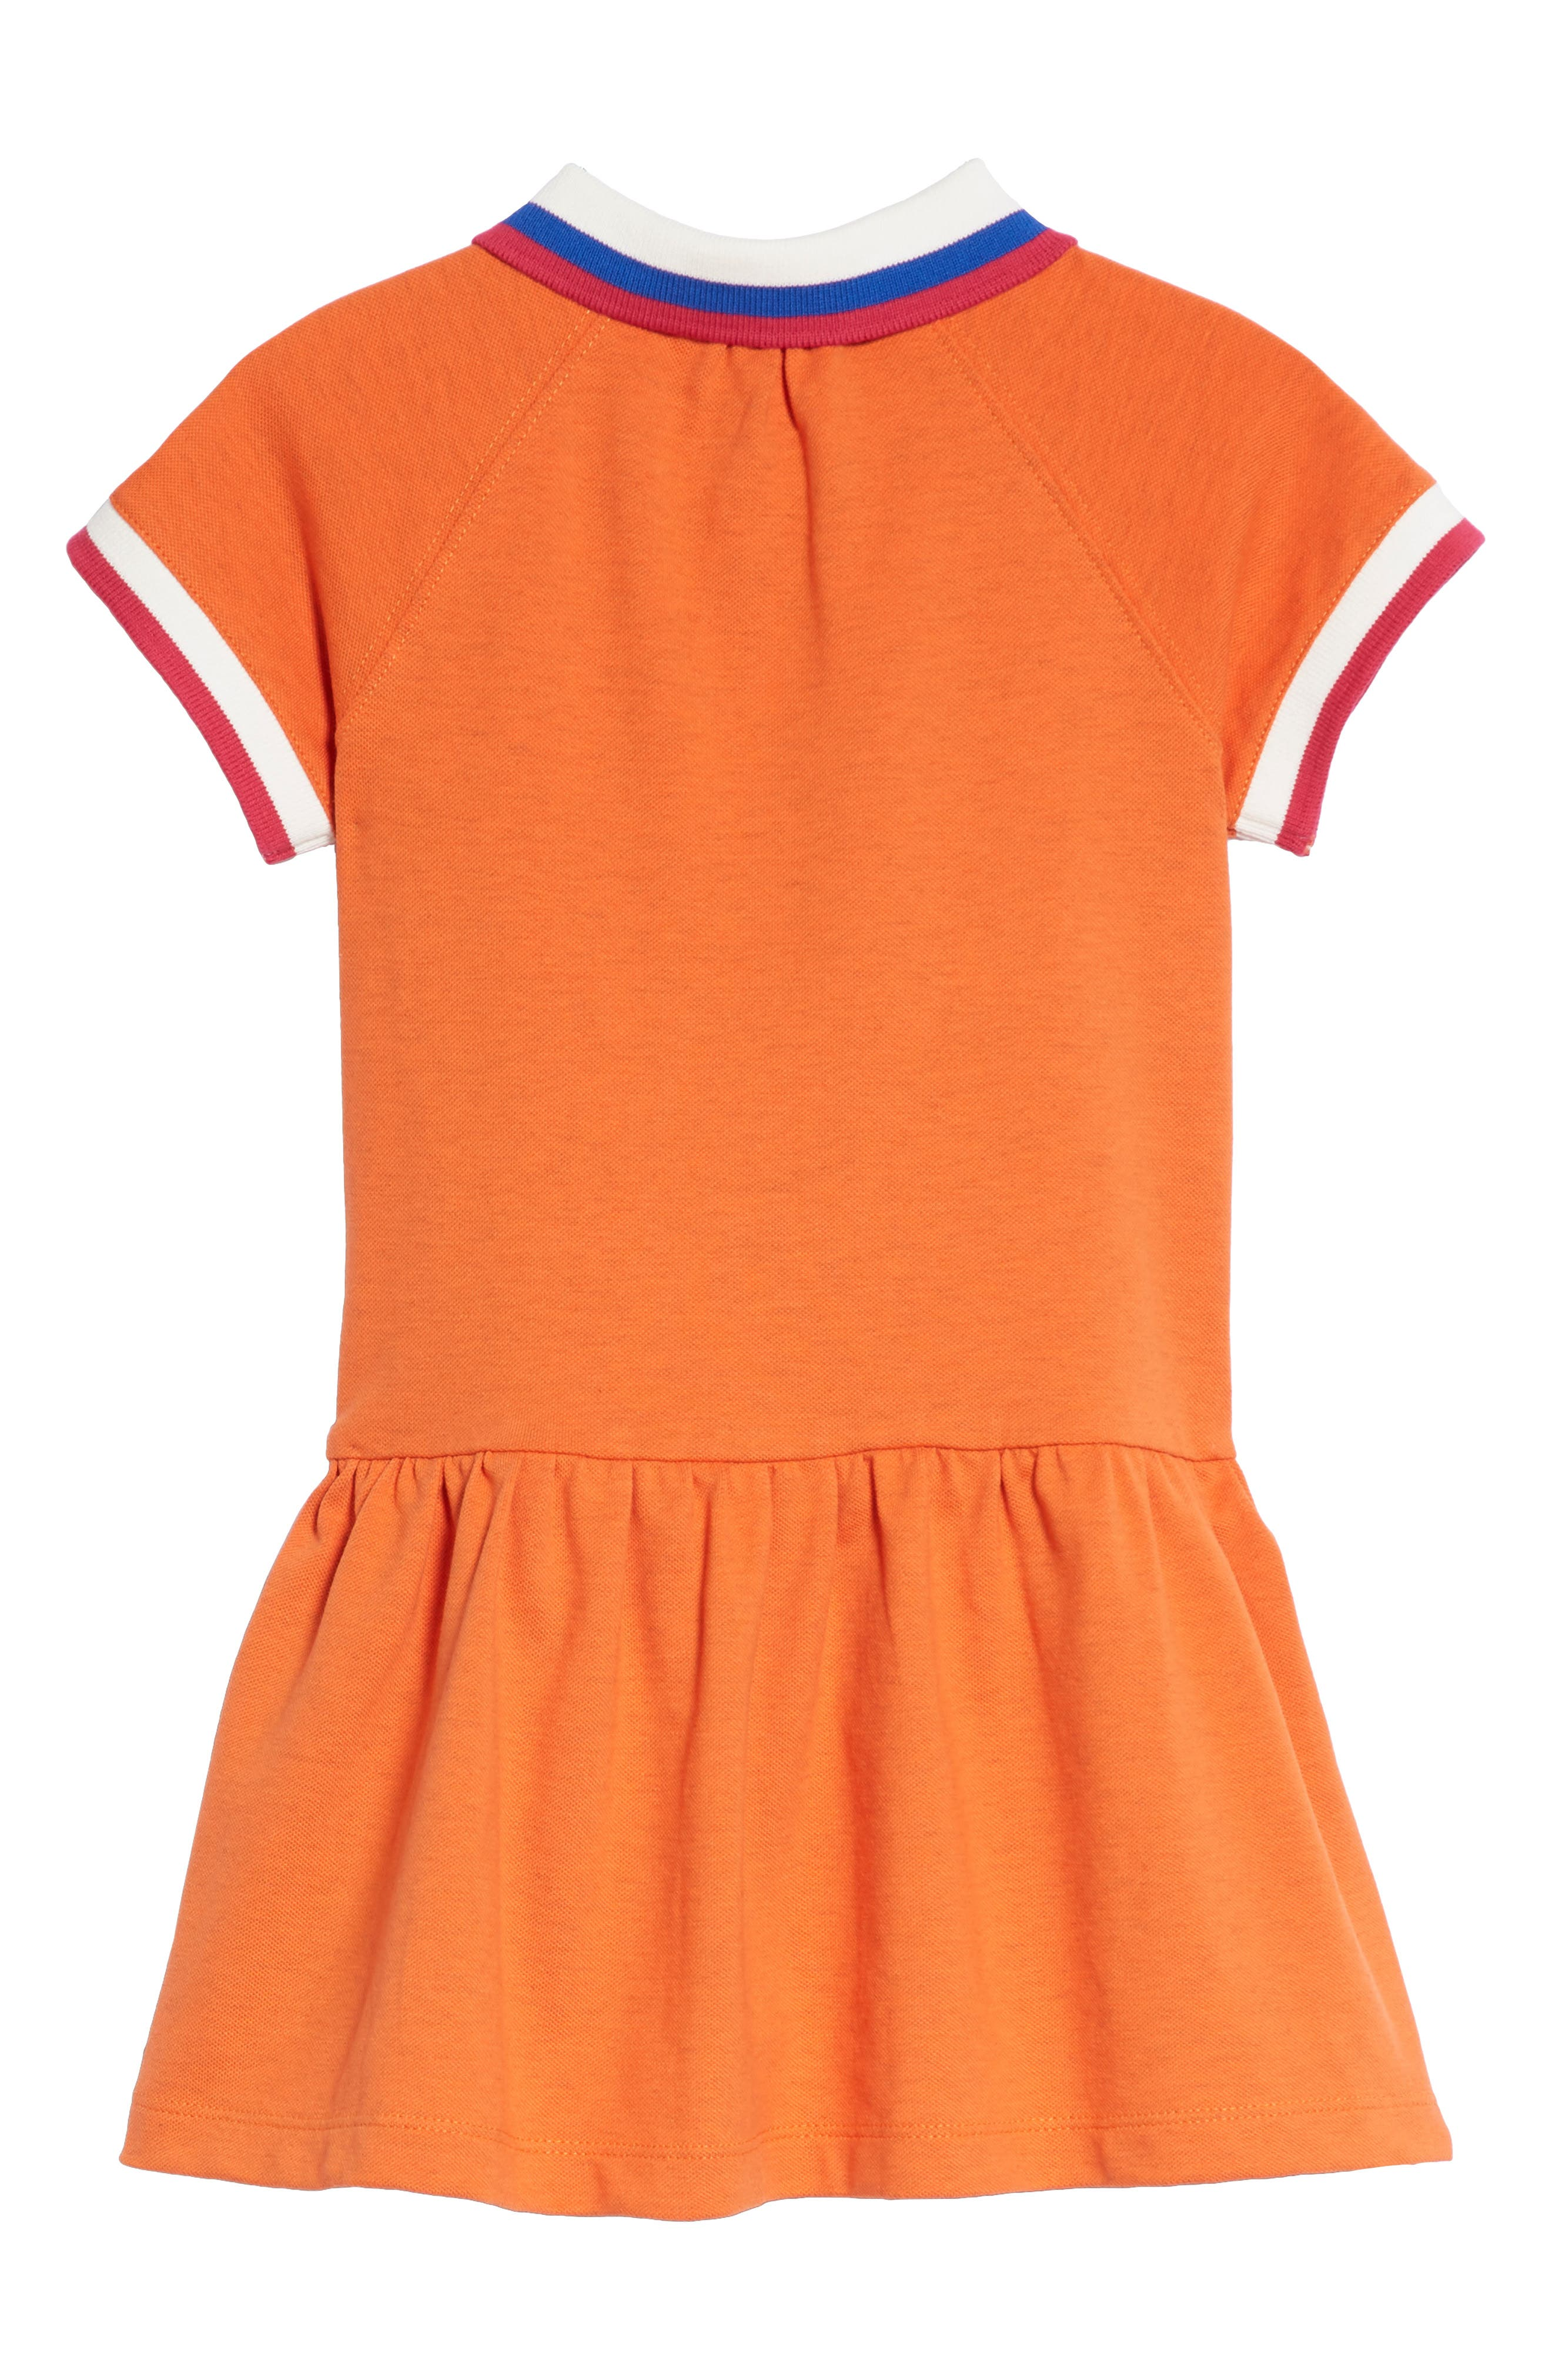 Burbery Cali Polo Dress,                             Alternate thumbnail 2, color,                             820